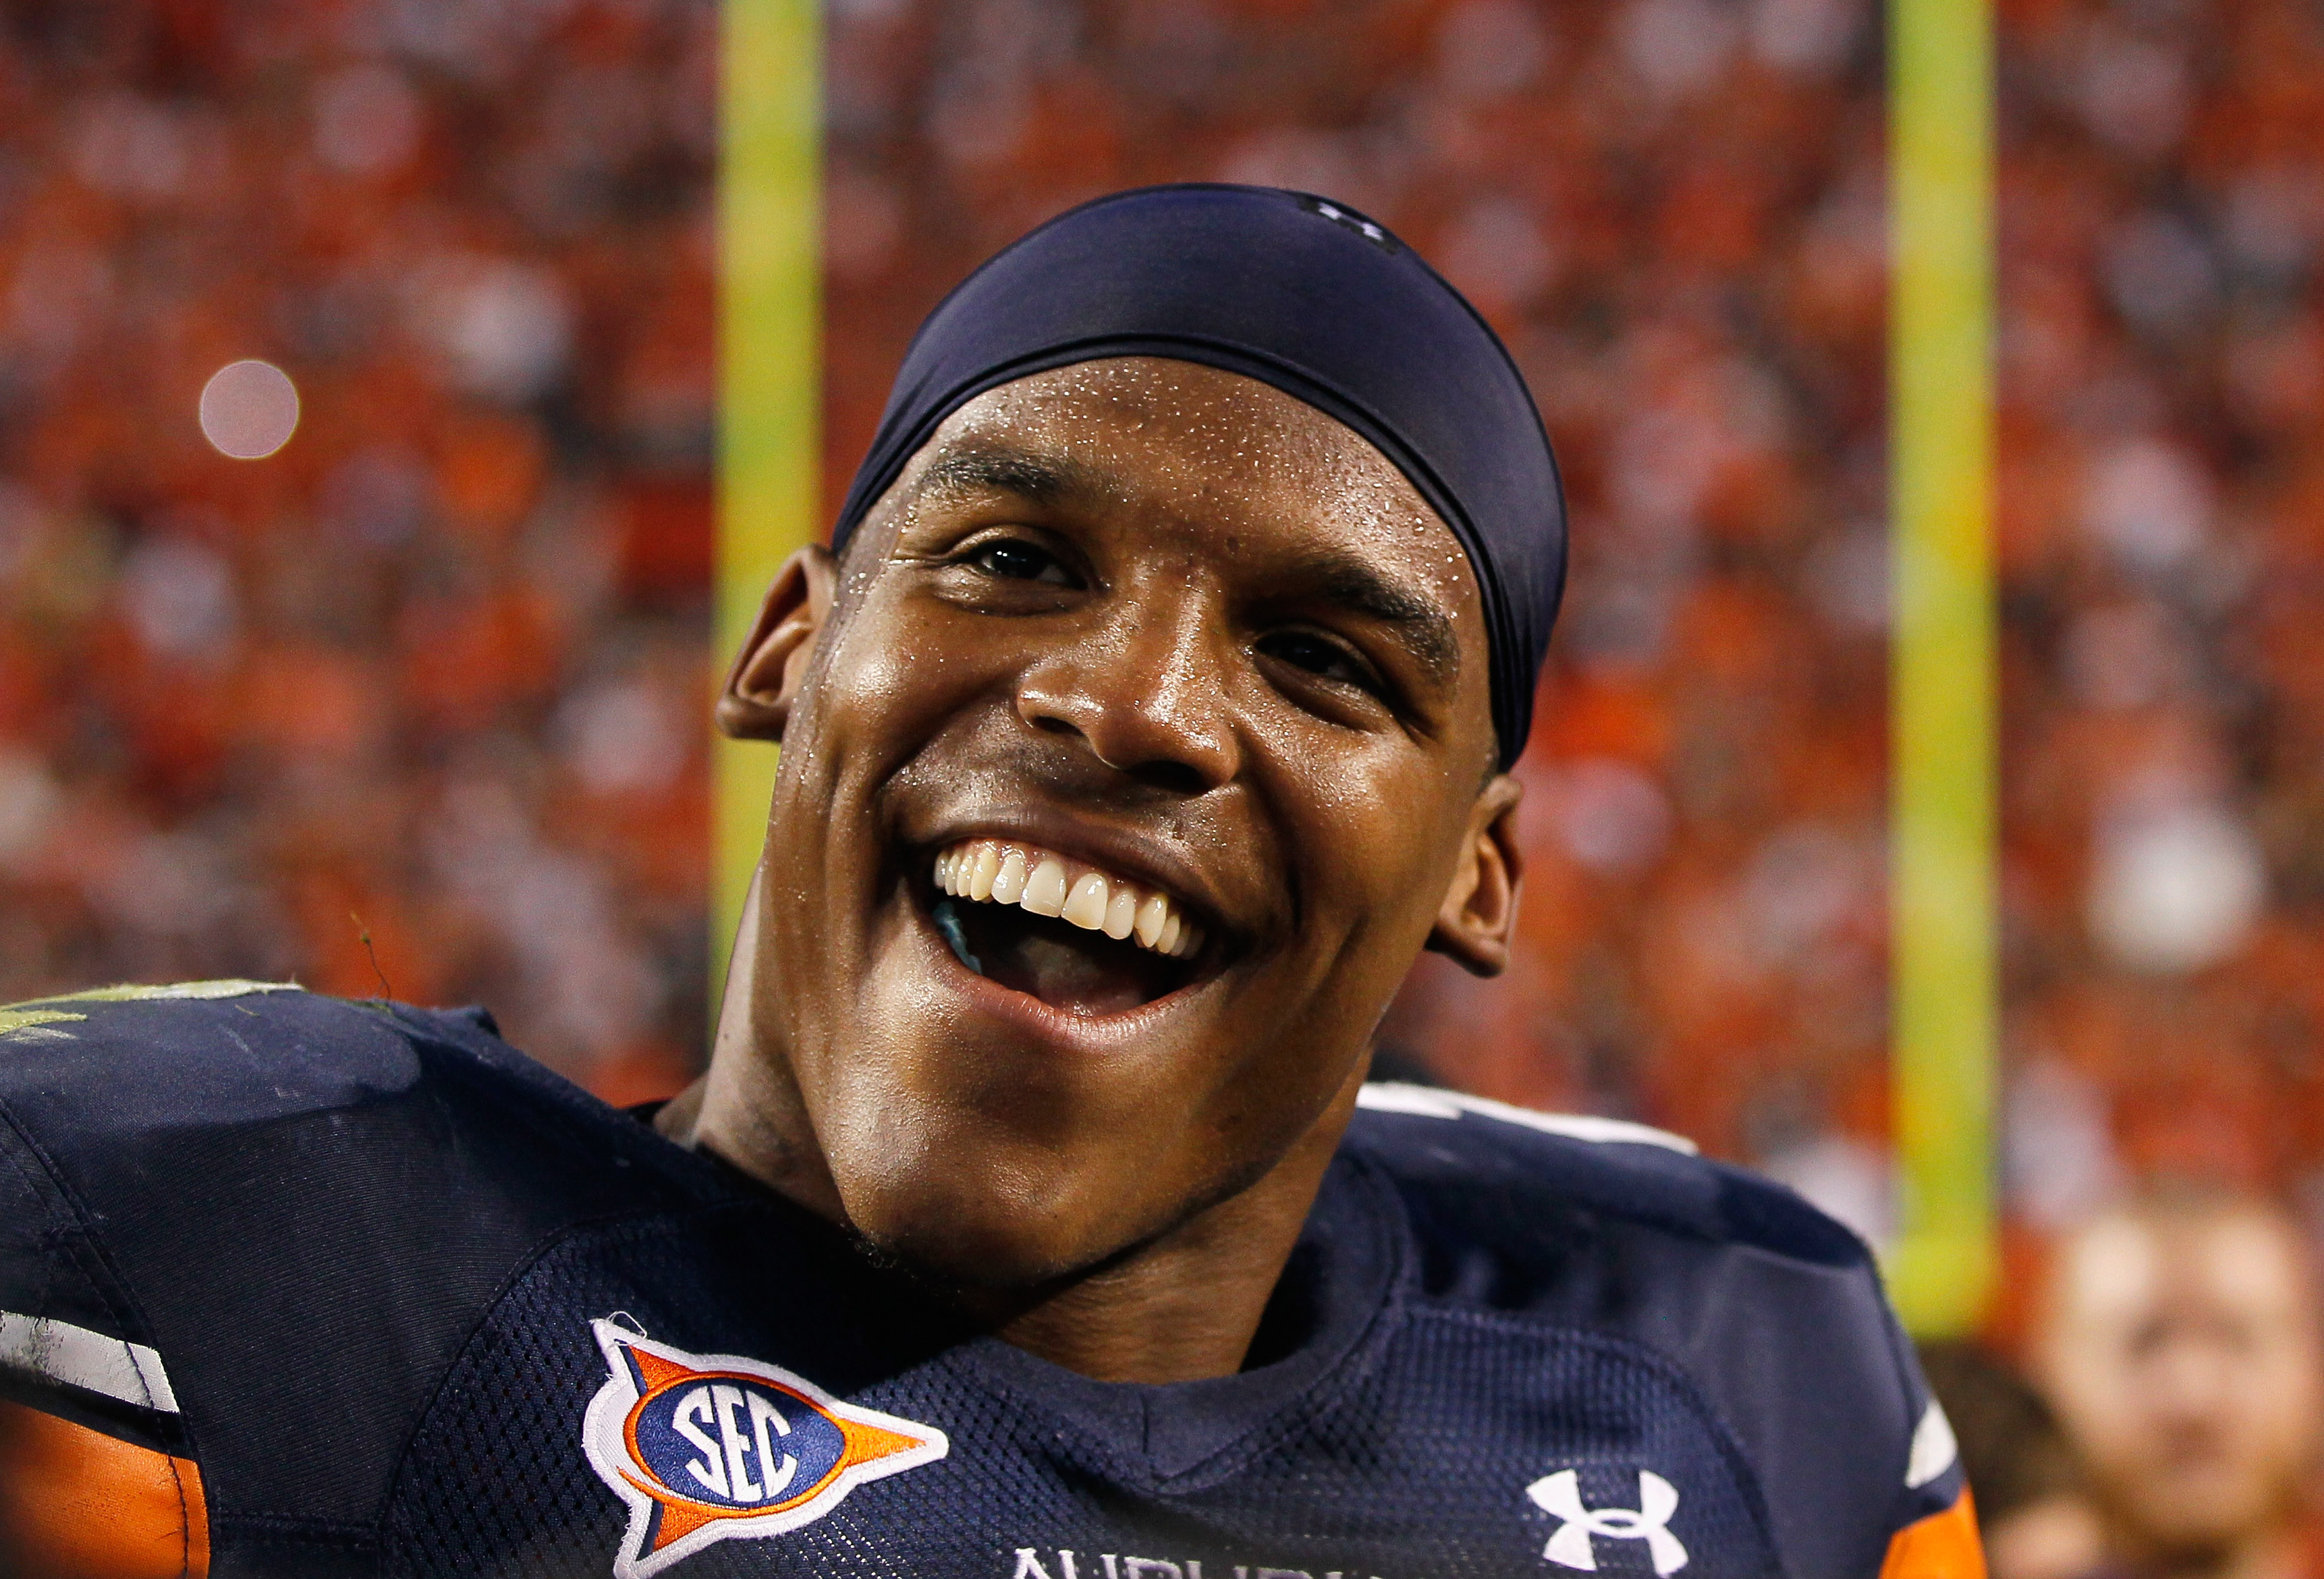 AUBURN, AL - OCTOBER 23:  Quarterback Cameron Newton #2 of the Auburn Tigers celebrates after their 24-17 over the LSU Tigers at Jordan-Hare Stadium on October 23, 2010 in Auburn, Alabama.  (Photo by Kevin C. Cox/Getty Images)